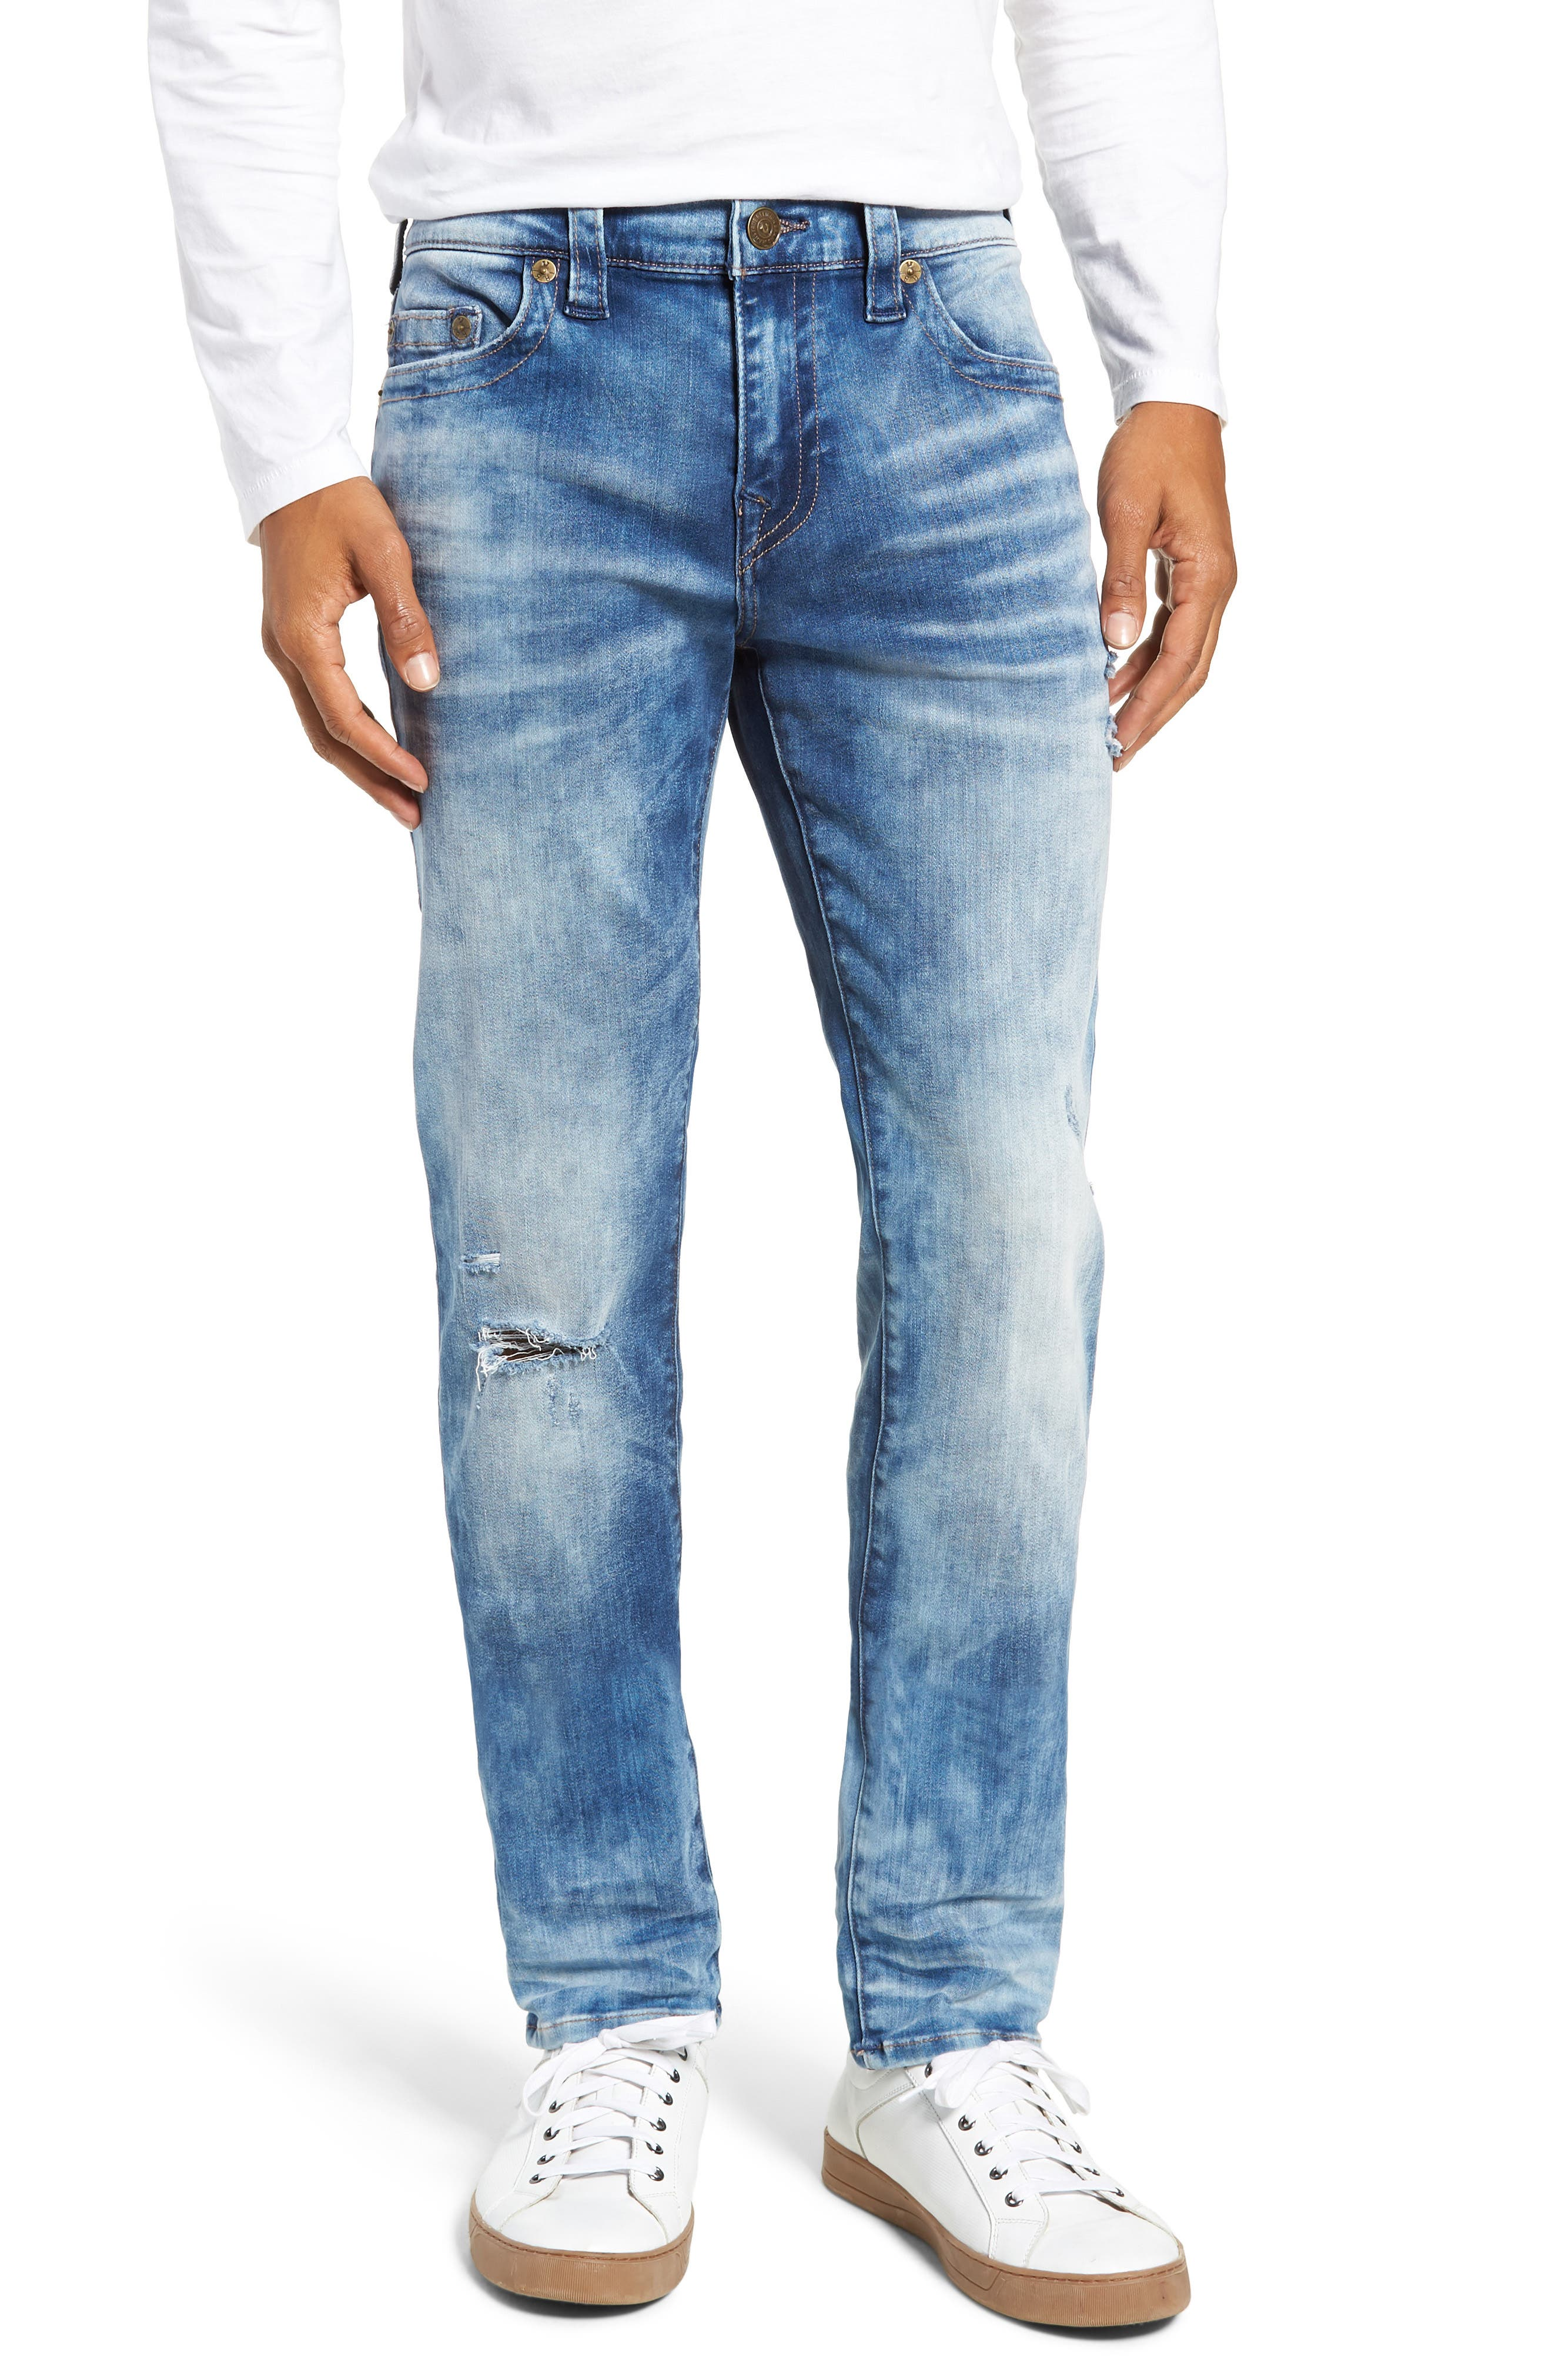 Rocco Skinny Fit Jeans,                             Main thumbnail 1, color,                             BLUE RIOT